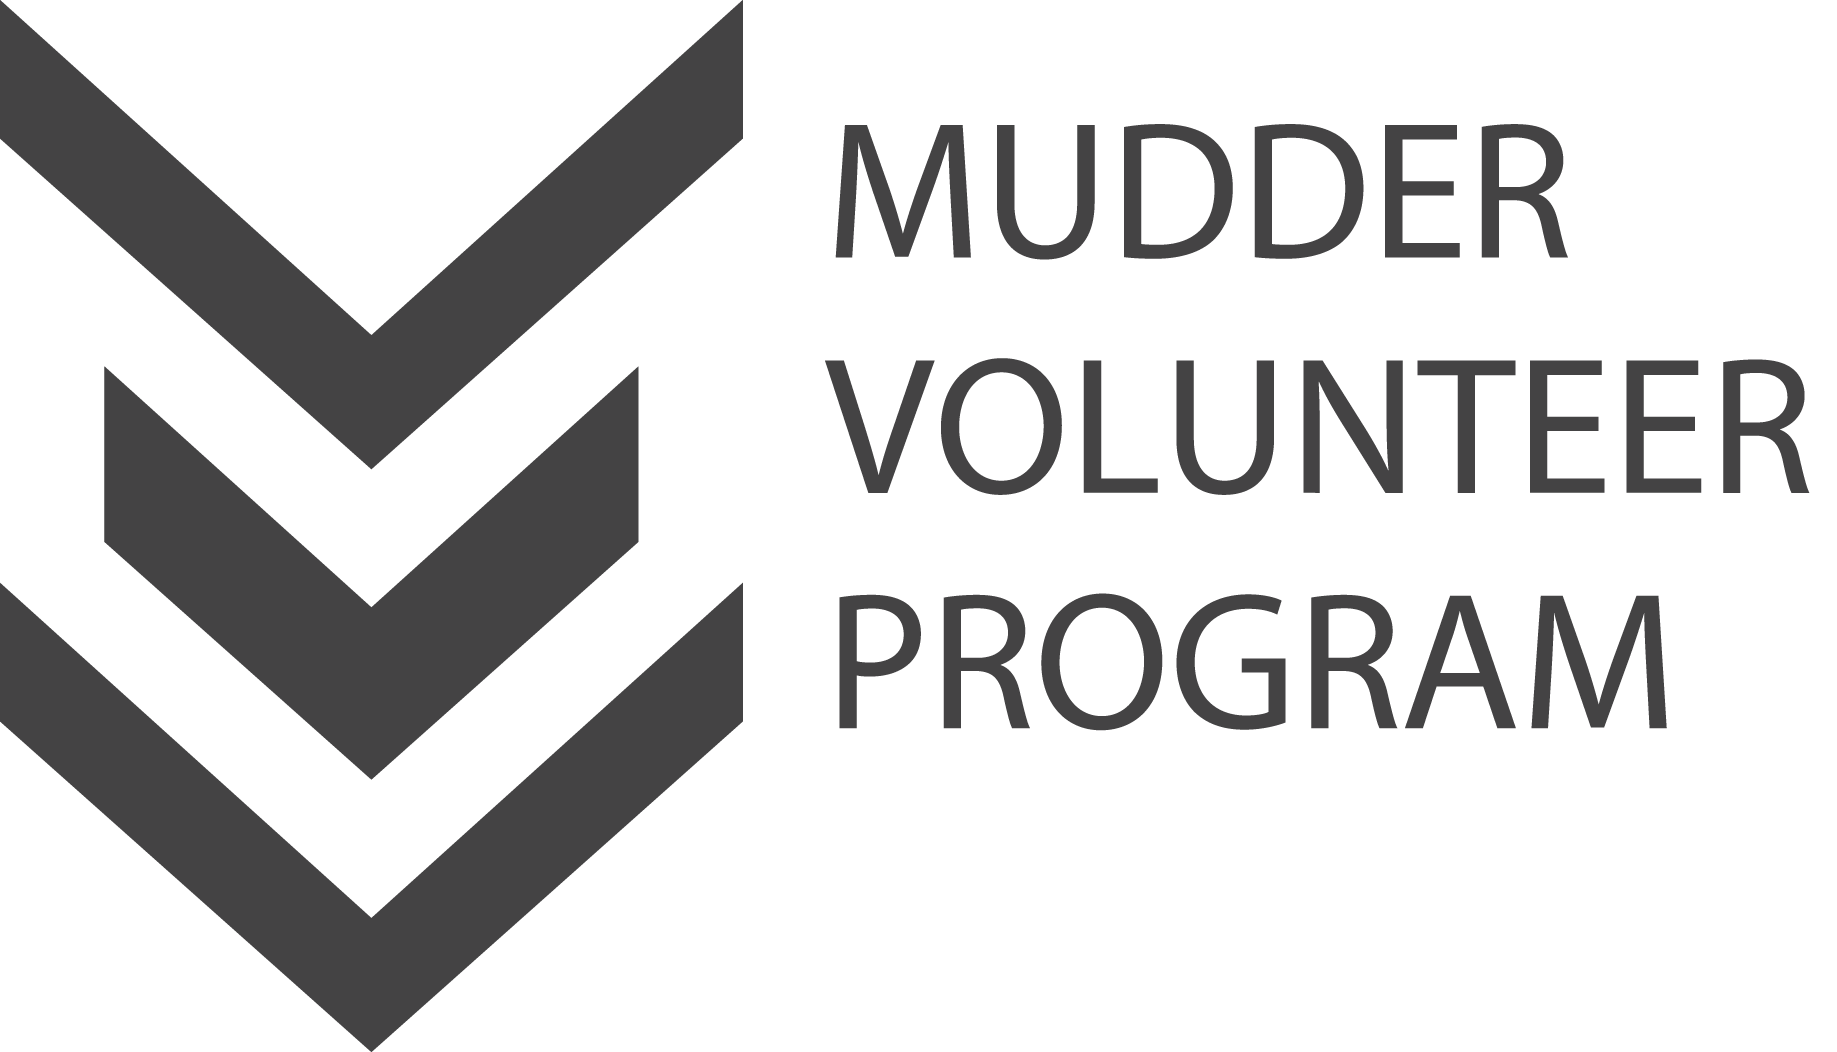 Mudder Volunteer Program